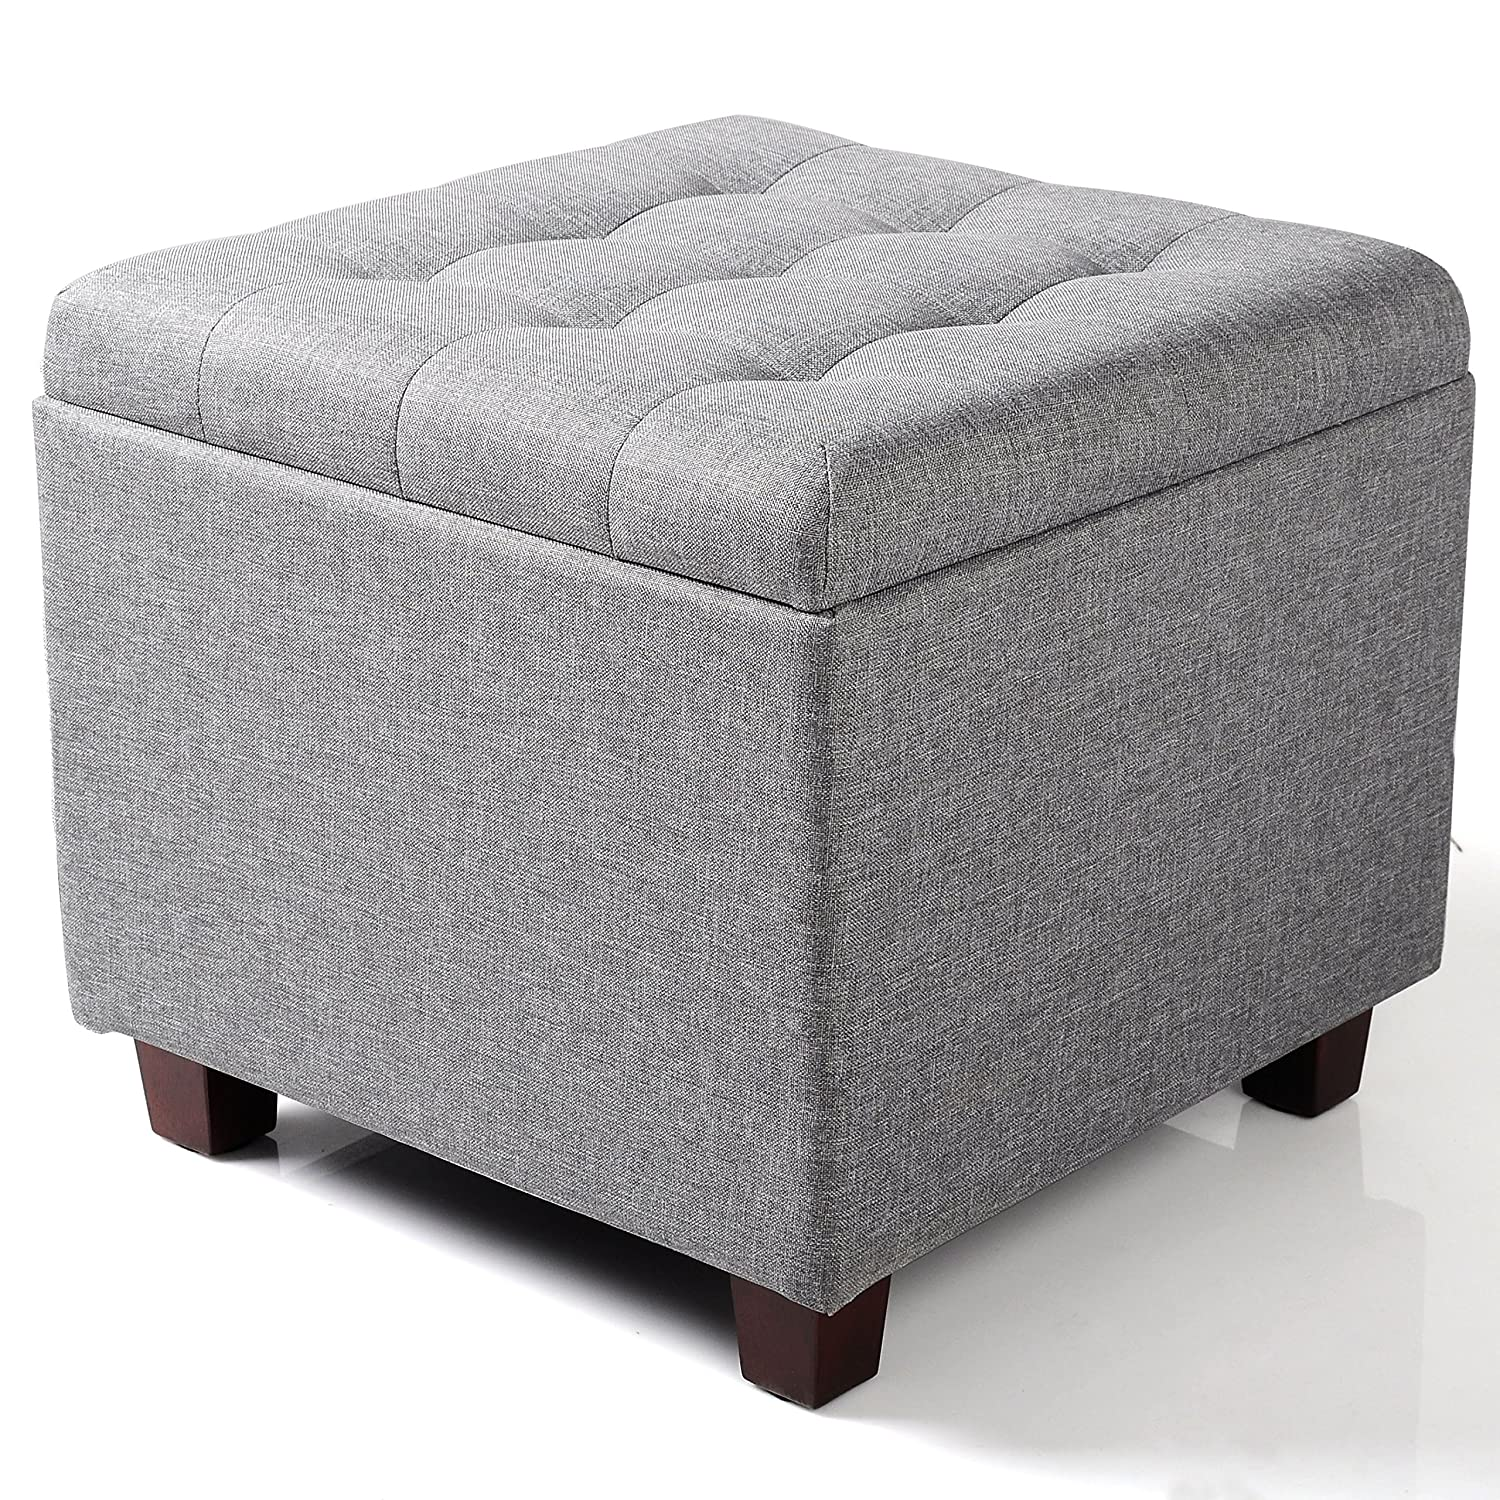 sneakers for cheap fa823 9a254 WOLTU SH18hgr Cube Stool with Storage Compartment/Storage Box/Removable  Lid/Linen Padded Seat 45 x 45 x 41 cm Light Grey